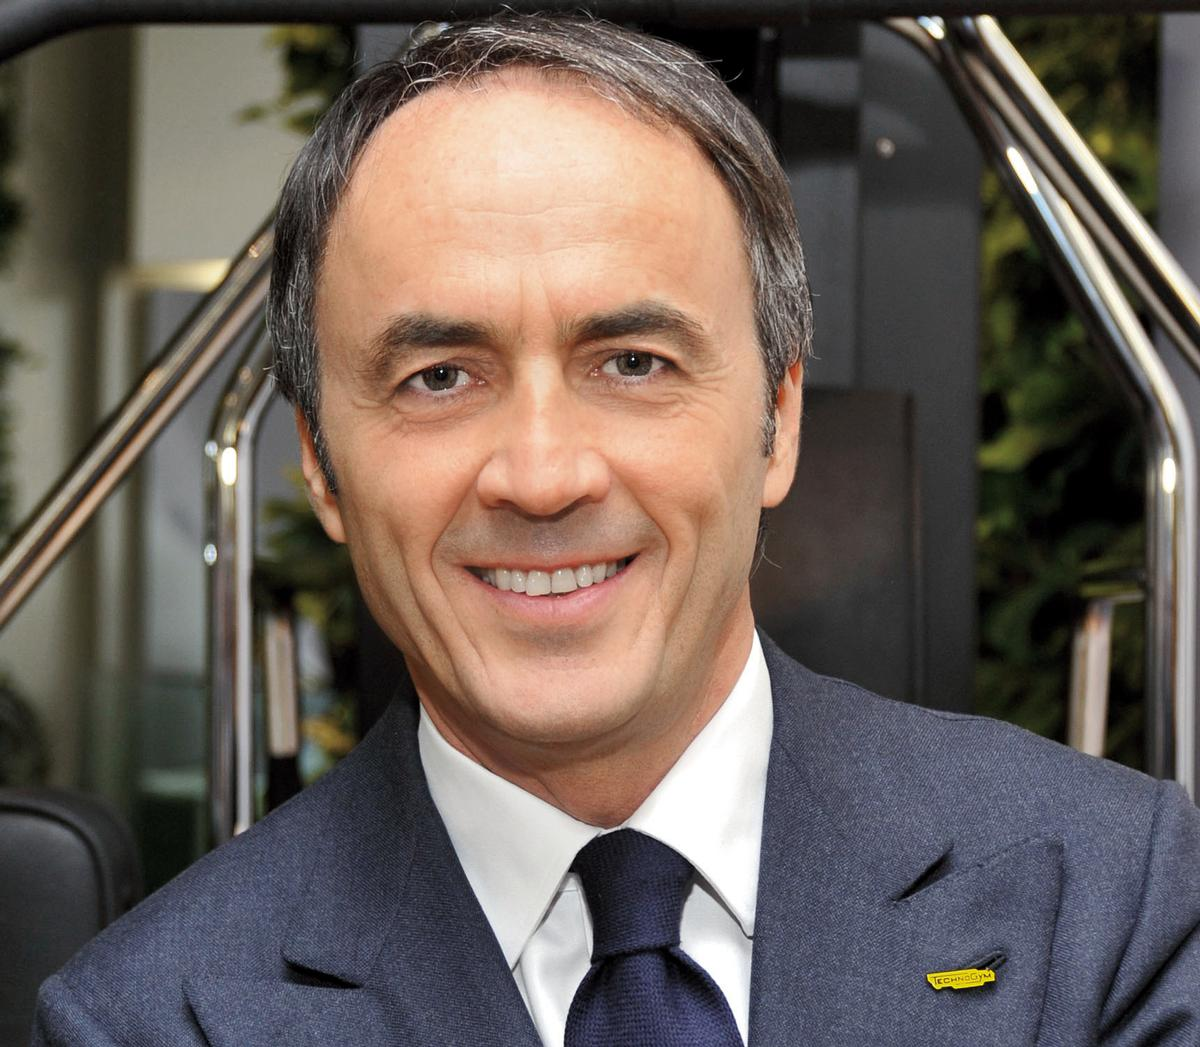 Nerio Alessandri, president and founder of wellness giant Technogym, is passionate about innovation